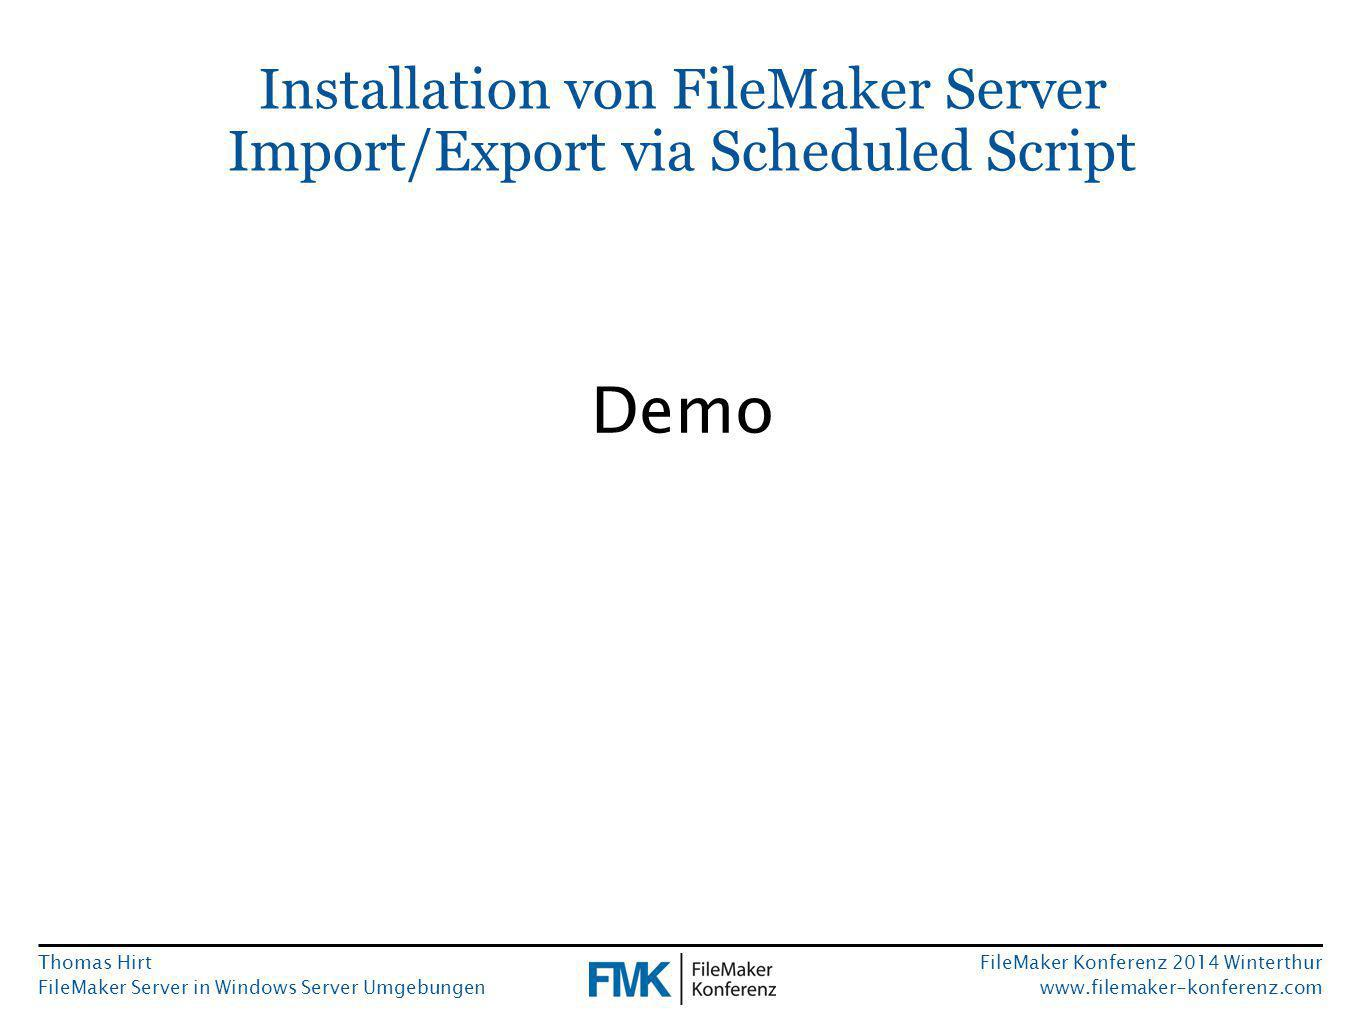 Thomas Hirt FileMaker Server in Windows Server Umgebungen FileMaker Konferenz 2014 Winterthur www.filemaker-konferenz.com Installation von FileMaker Server Import/Export via Scheduled Script Demo